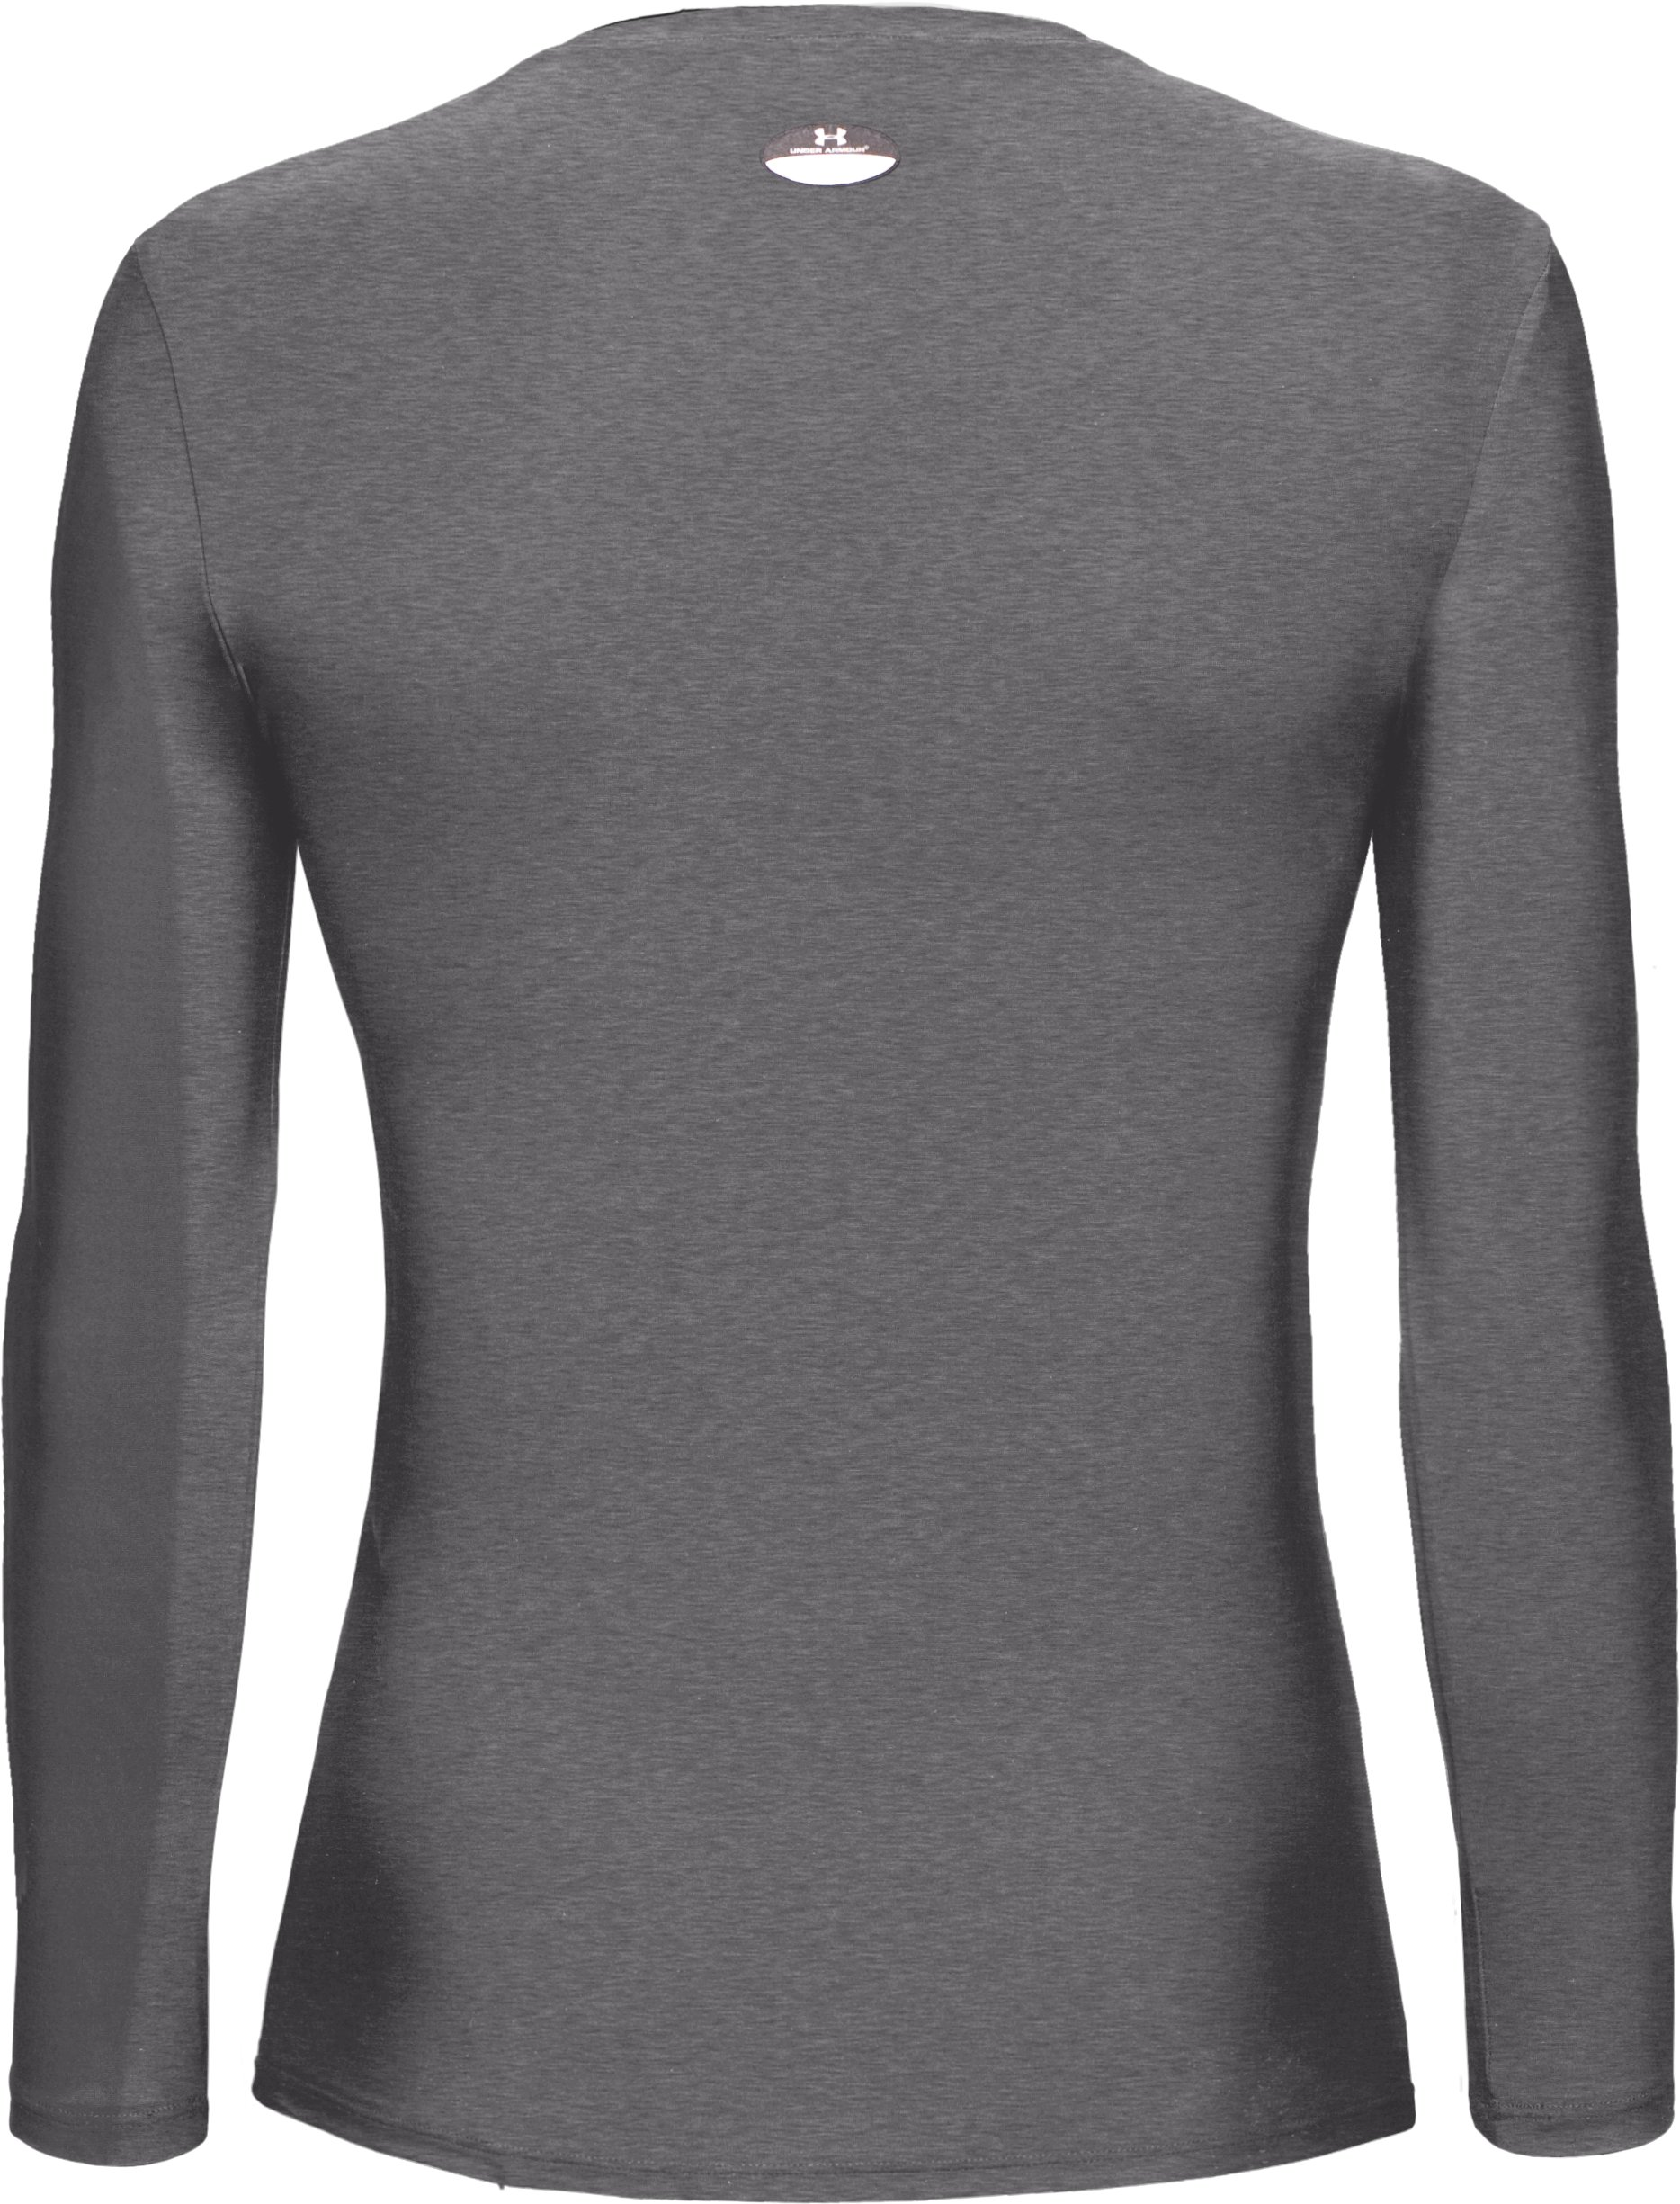 Women's HeatGear® Long Sleeve Compression T-Shirt, Medium Gray Heather